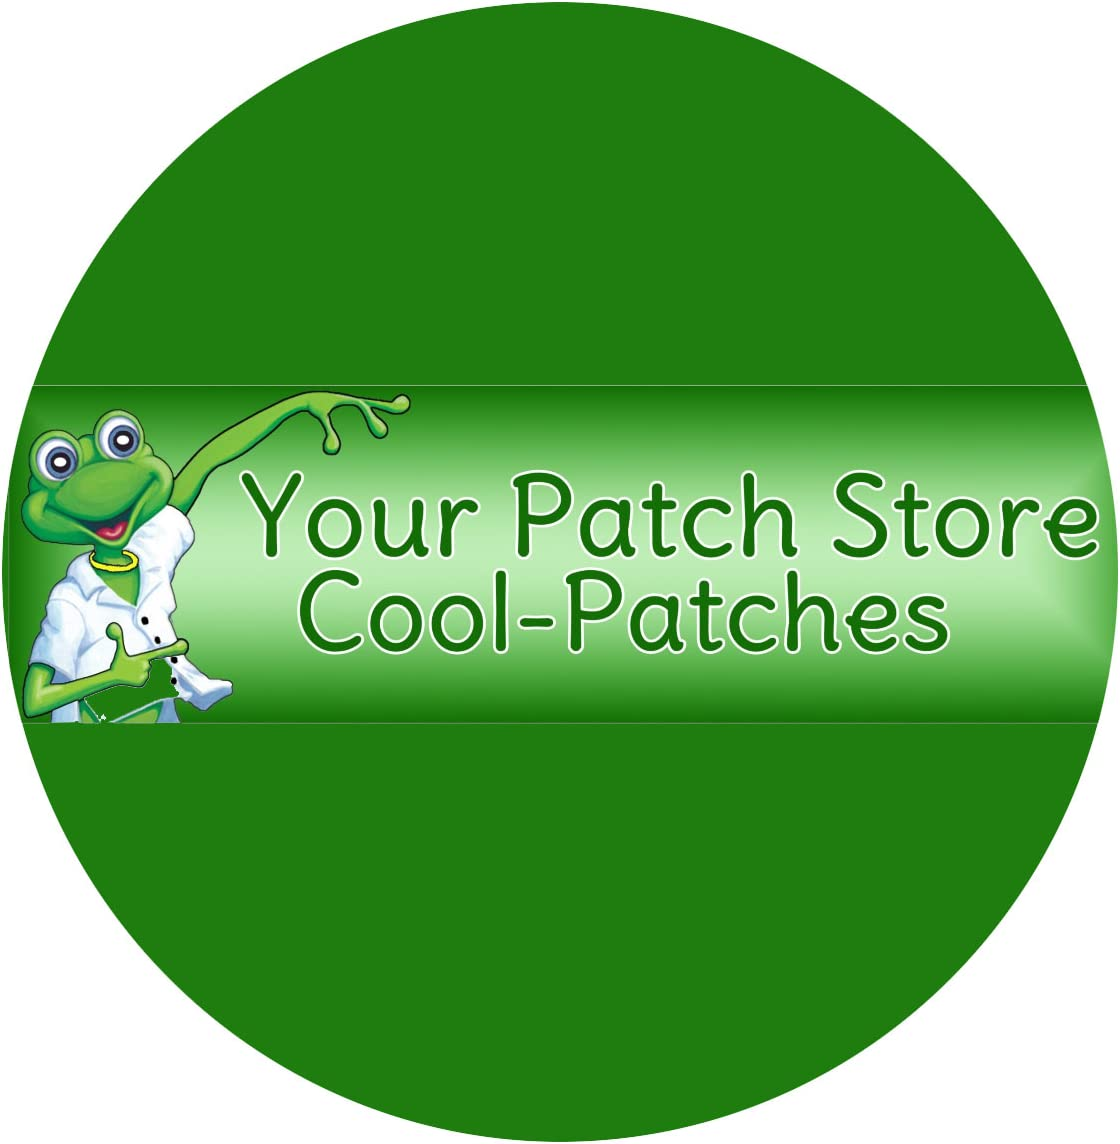 Cool-Patches